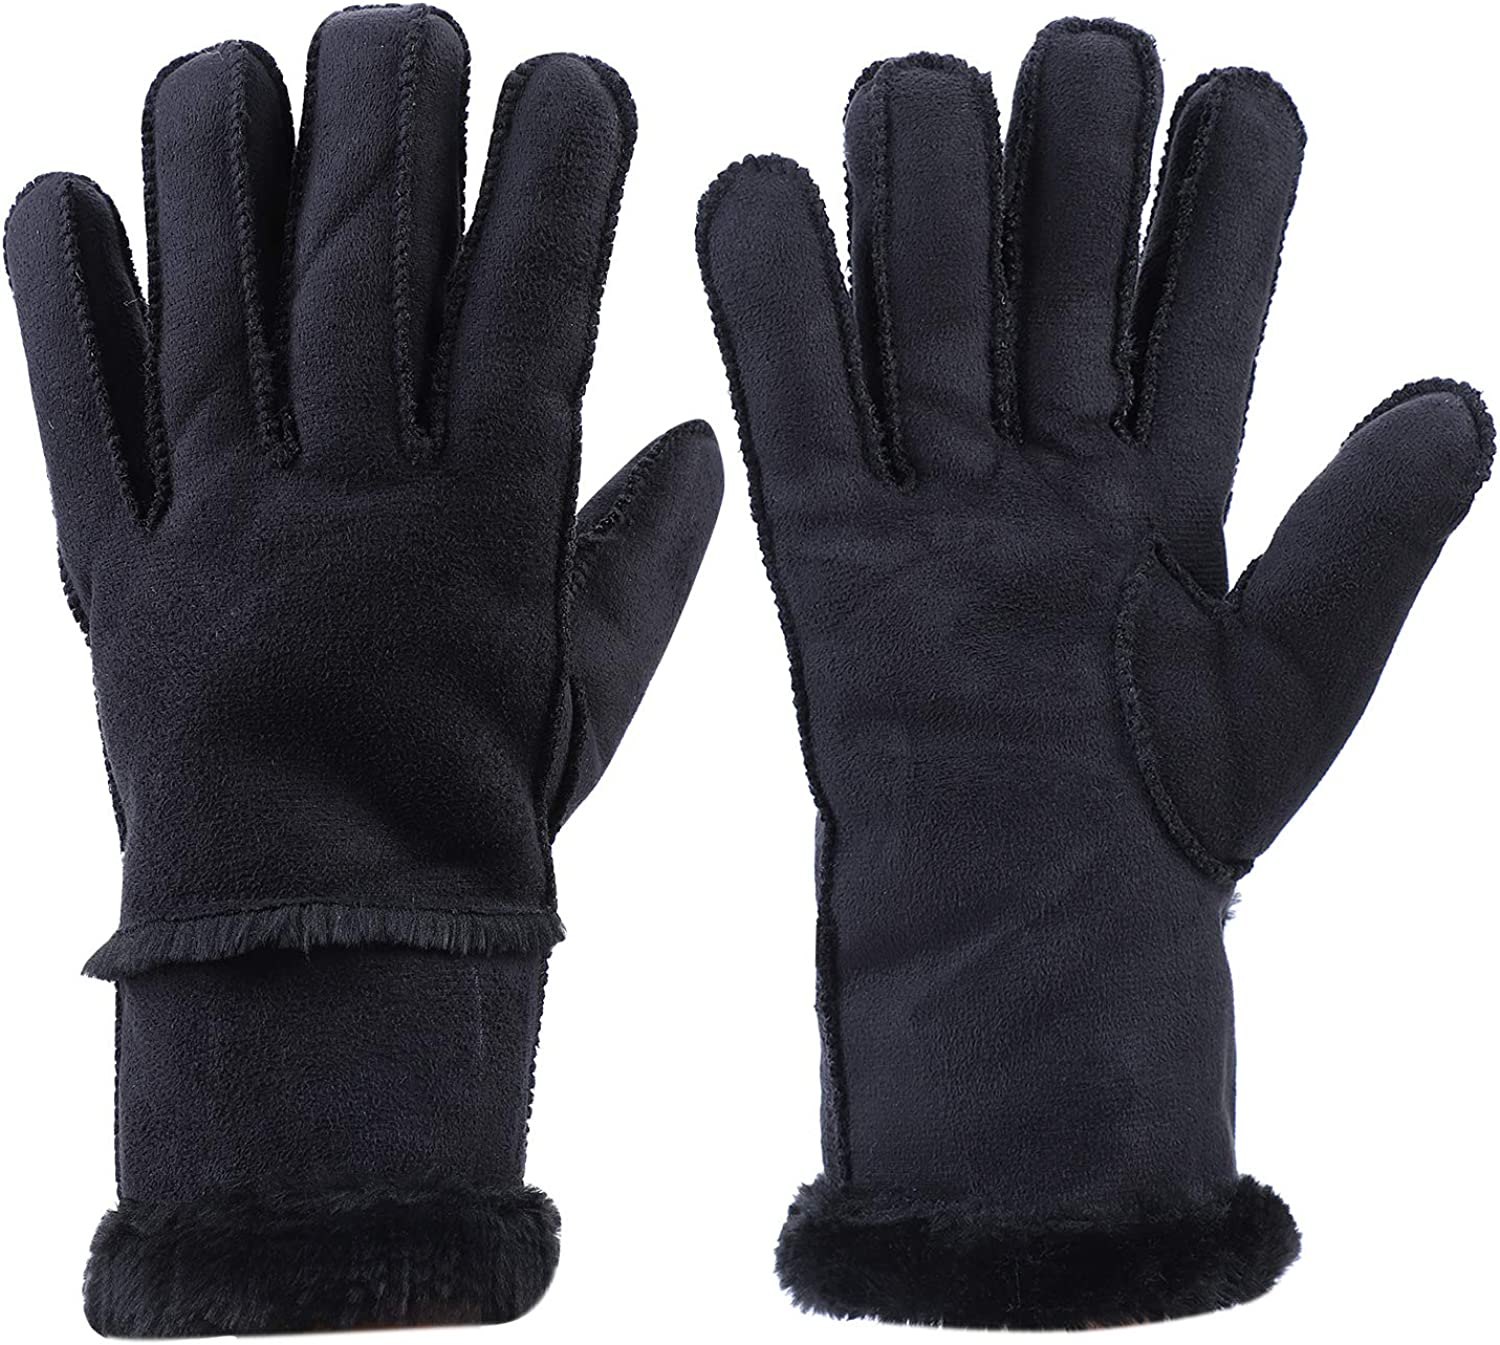 Faux Lambskin Shearling Leather Mitt Windproof Fleece Lined Gloves Winter Warm Cold Weather Mittens with Faux Fur Cuff